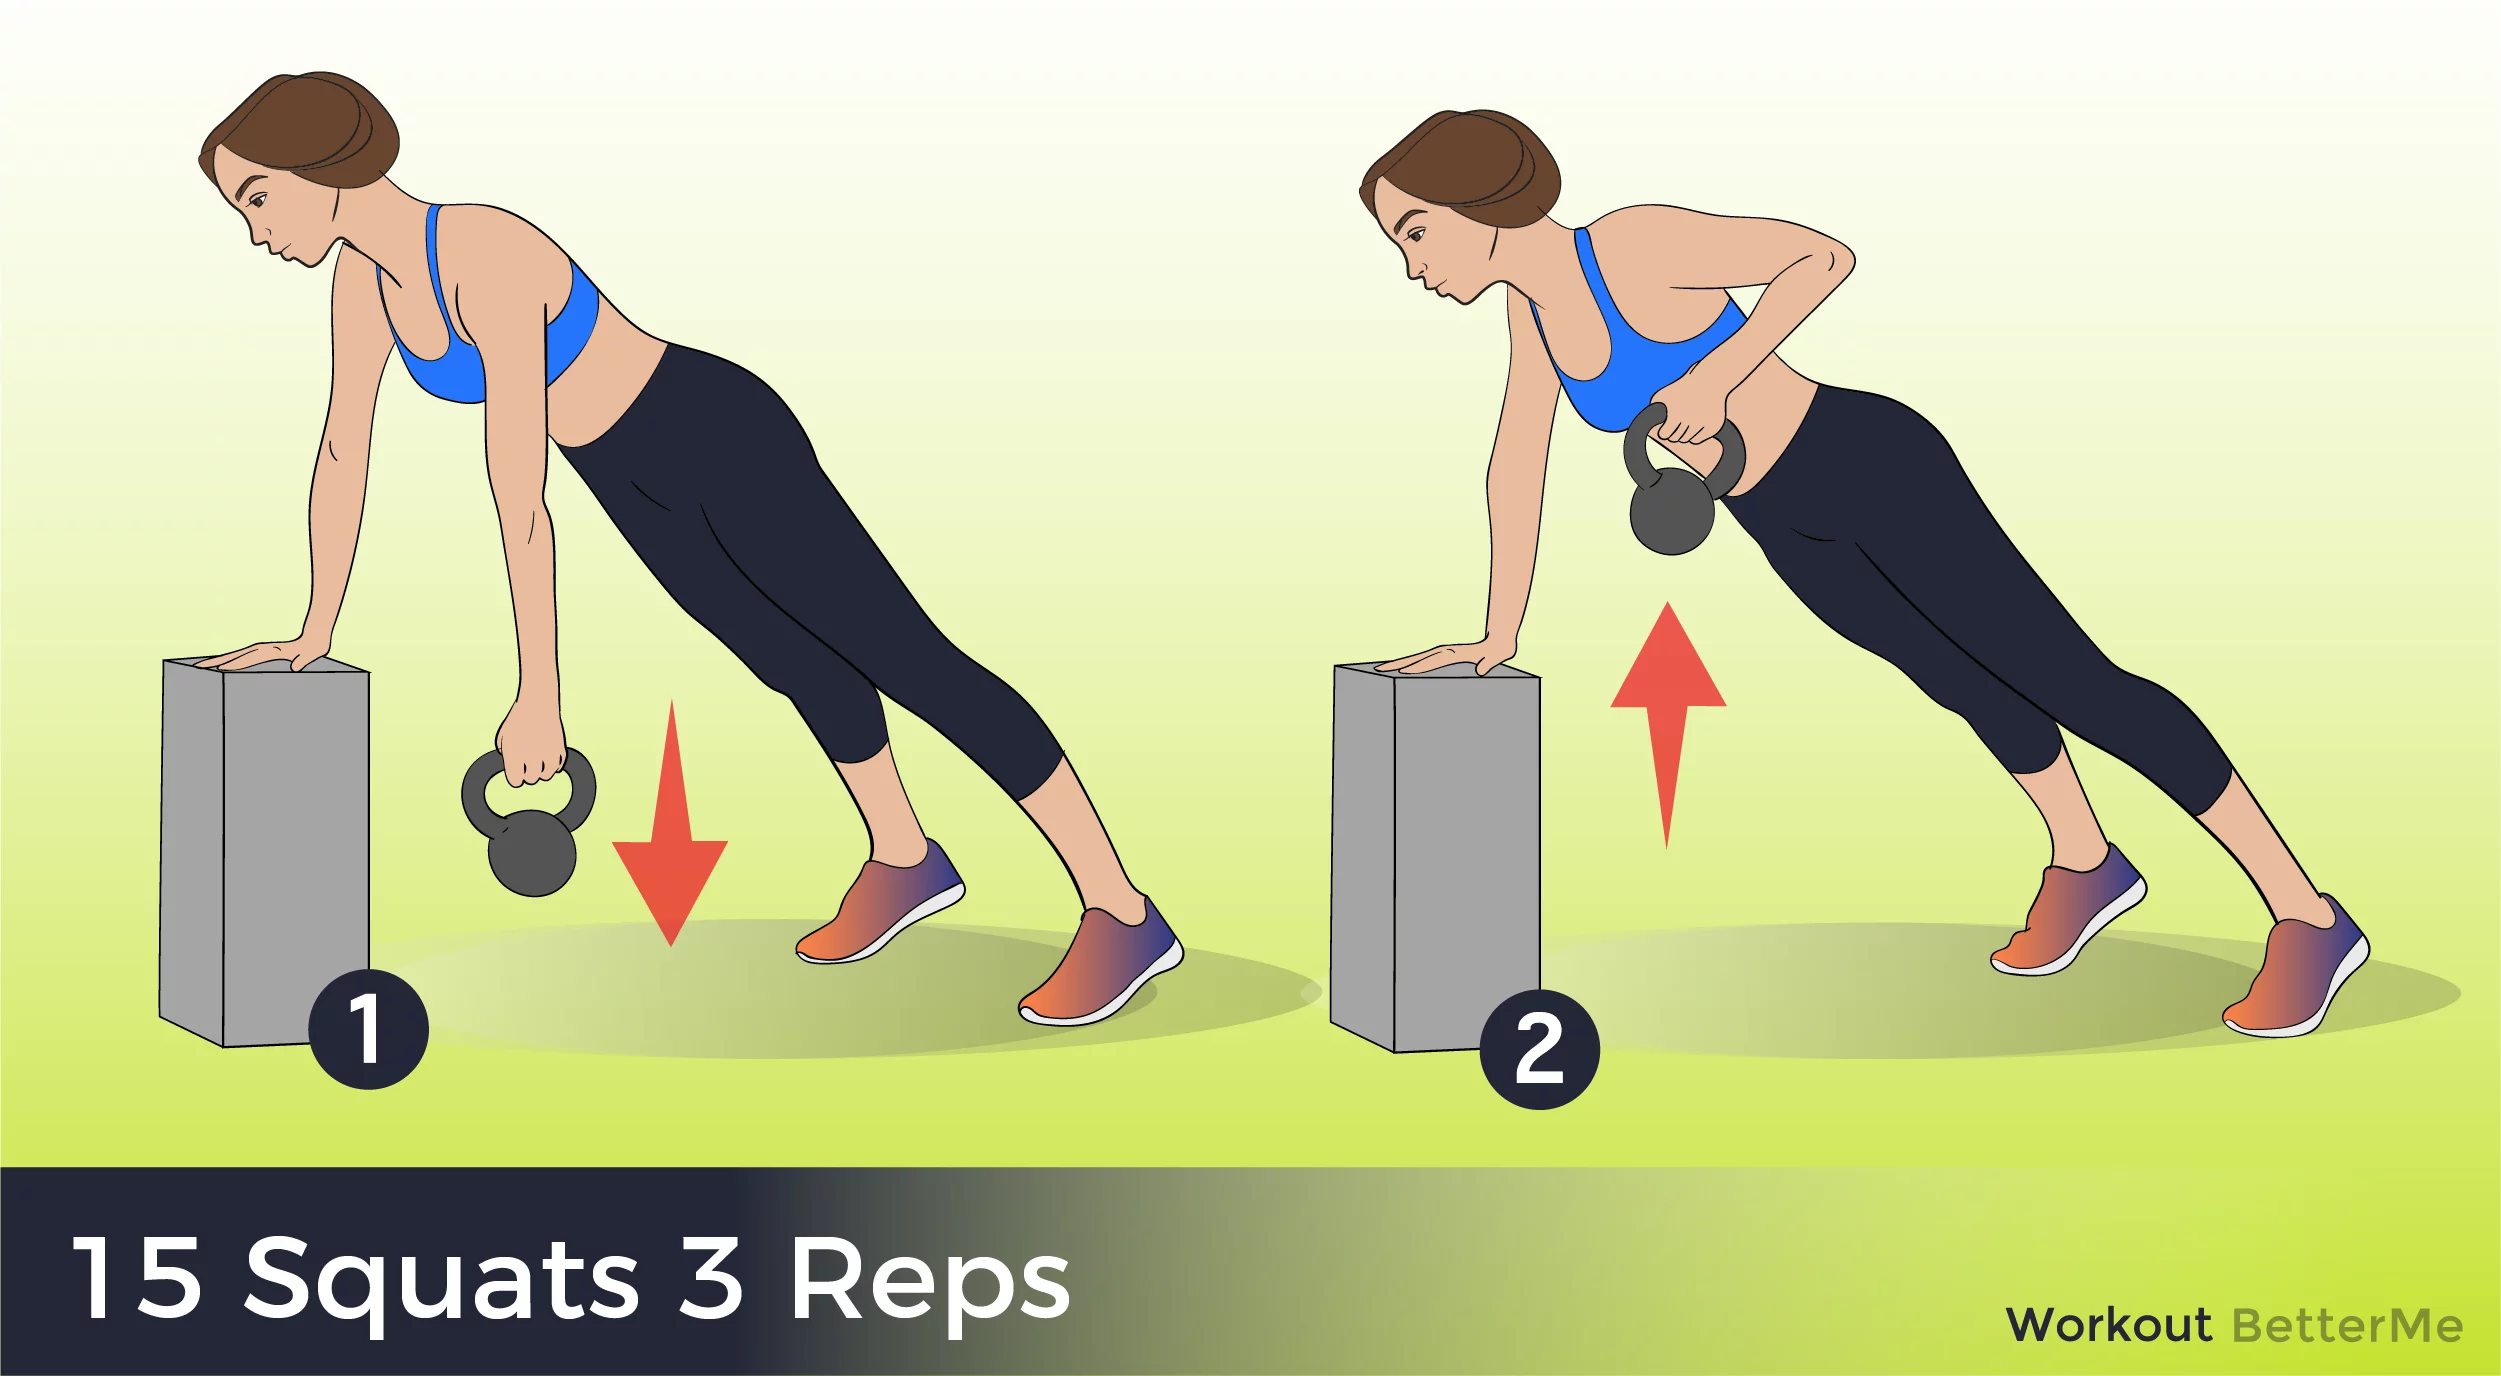 9 Exercises That Can Perk Up Sagging Breasts-4501